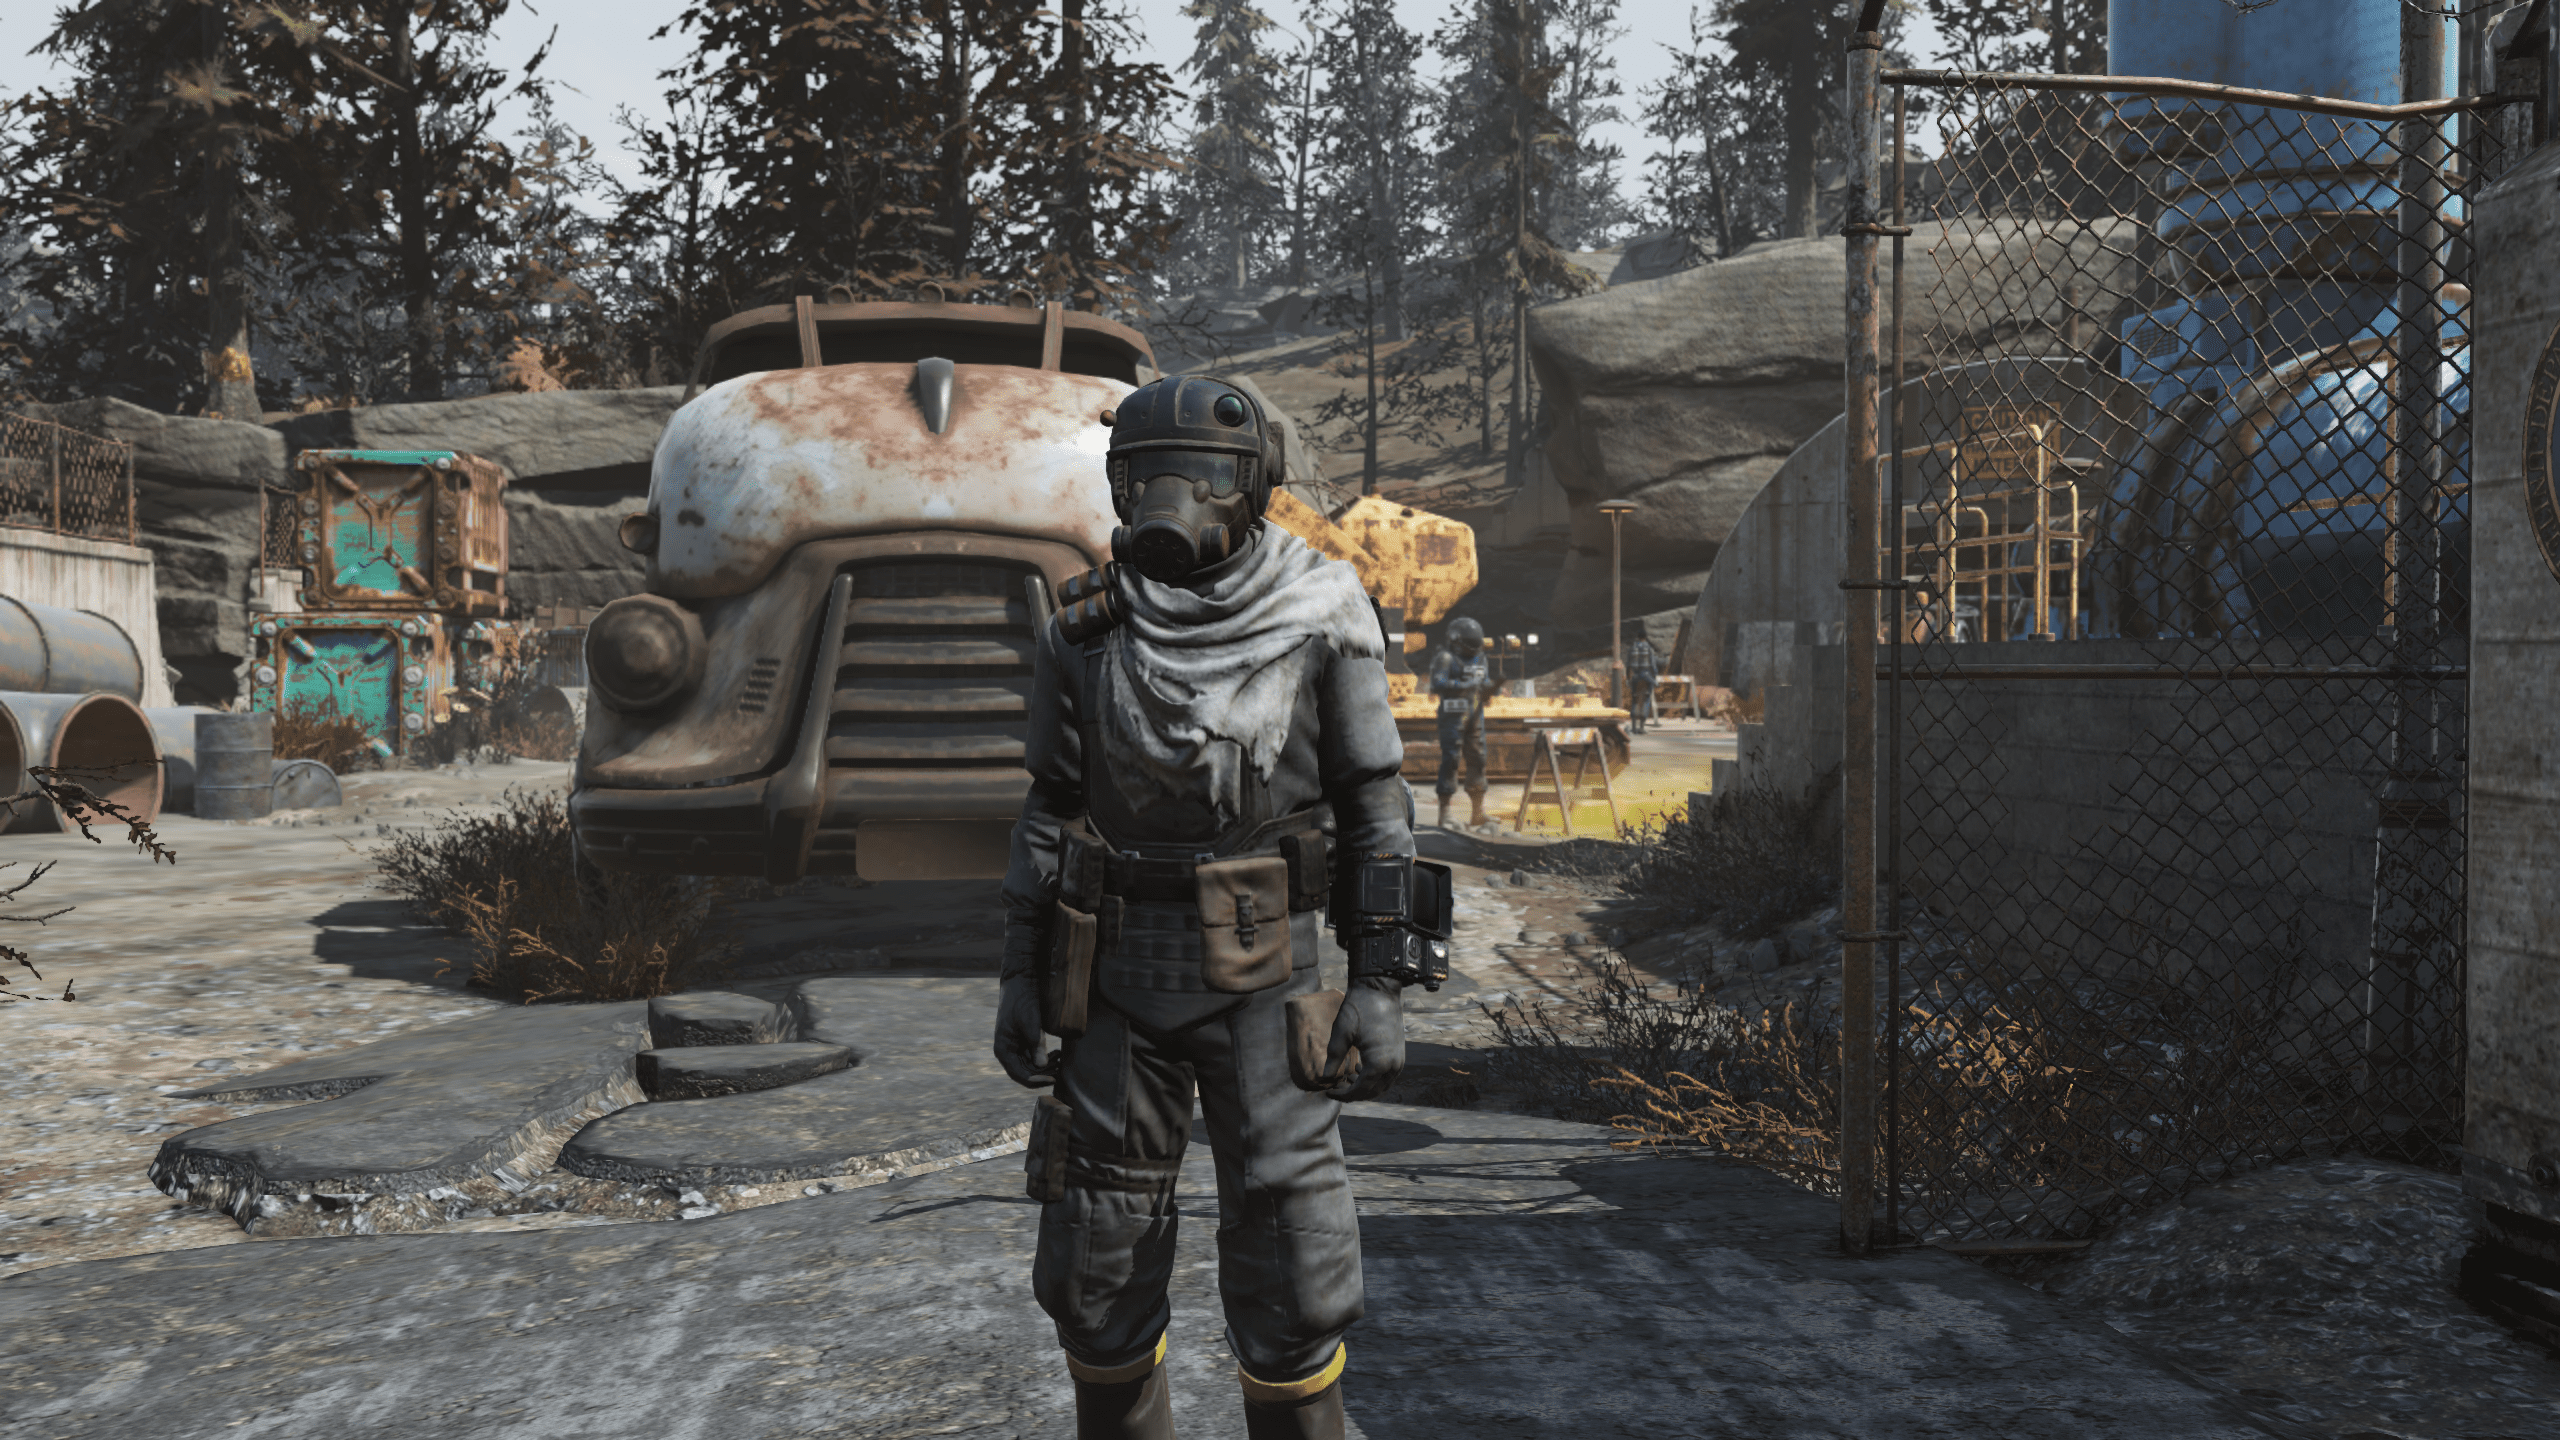 [Wastelanders] Insurgent Outfit + Marine Armor Helmet | LIMITED TIME EVENT REWARDS | FAST DELIVERY |